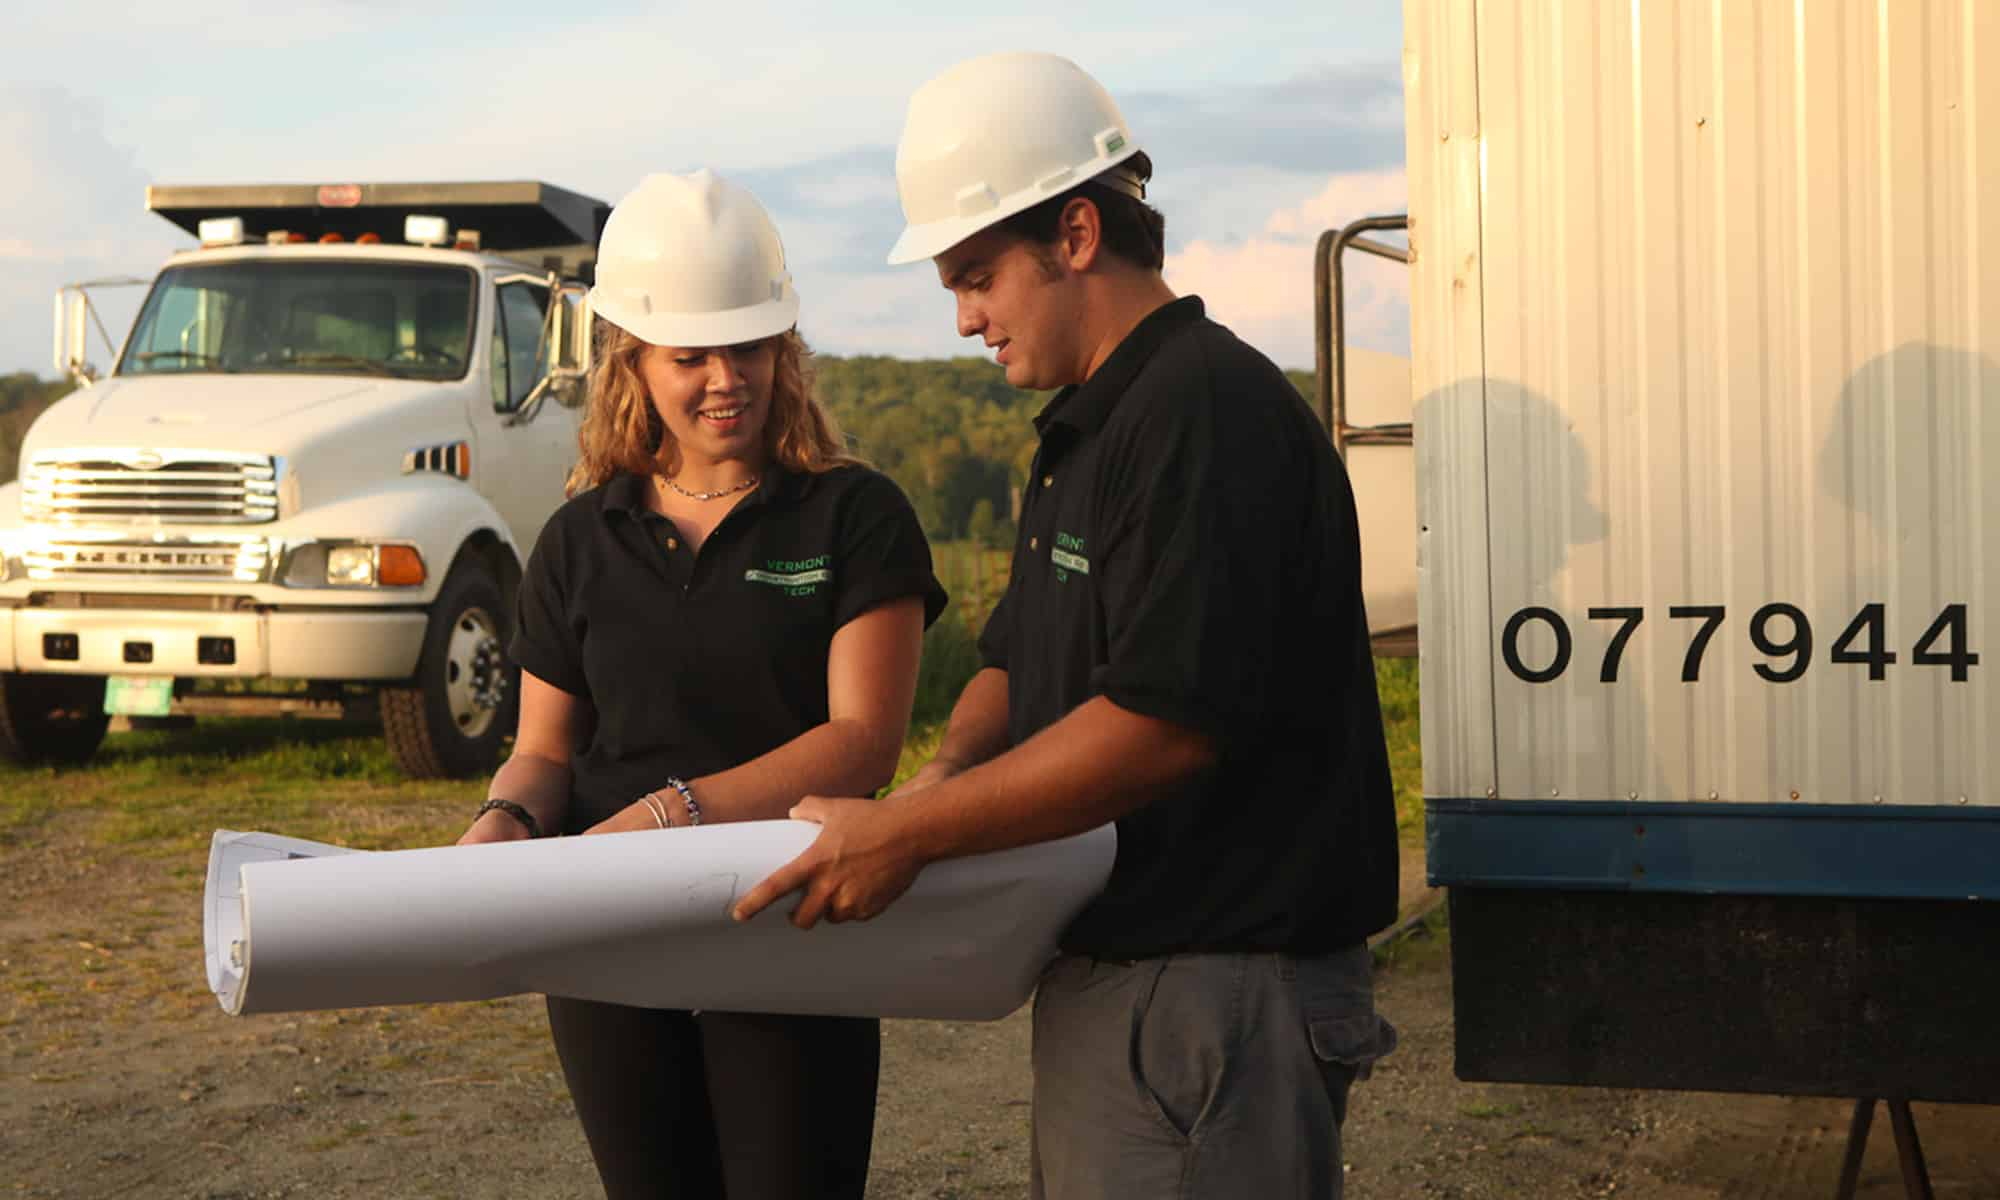 Two construction management students work on the job site and read construction plans together.